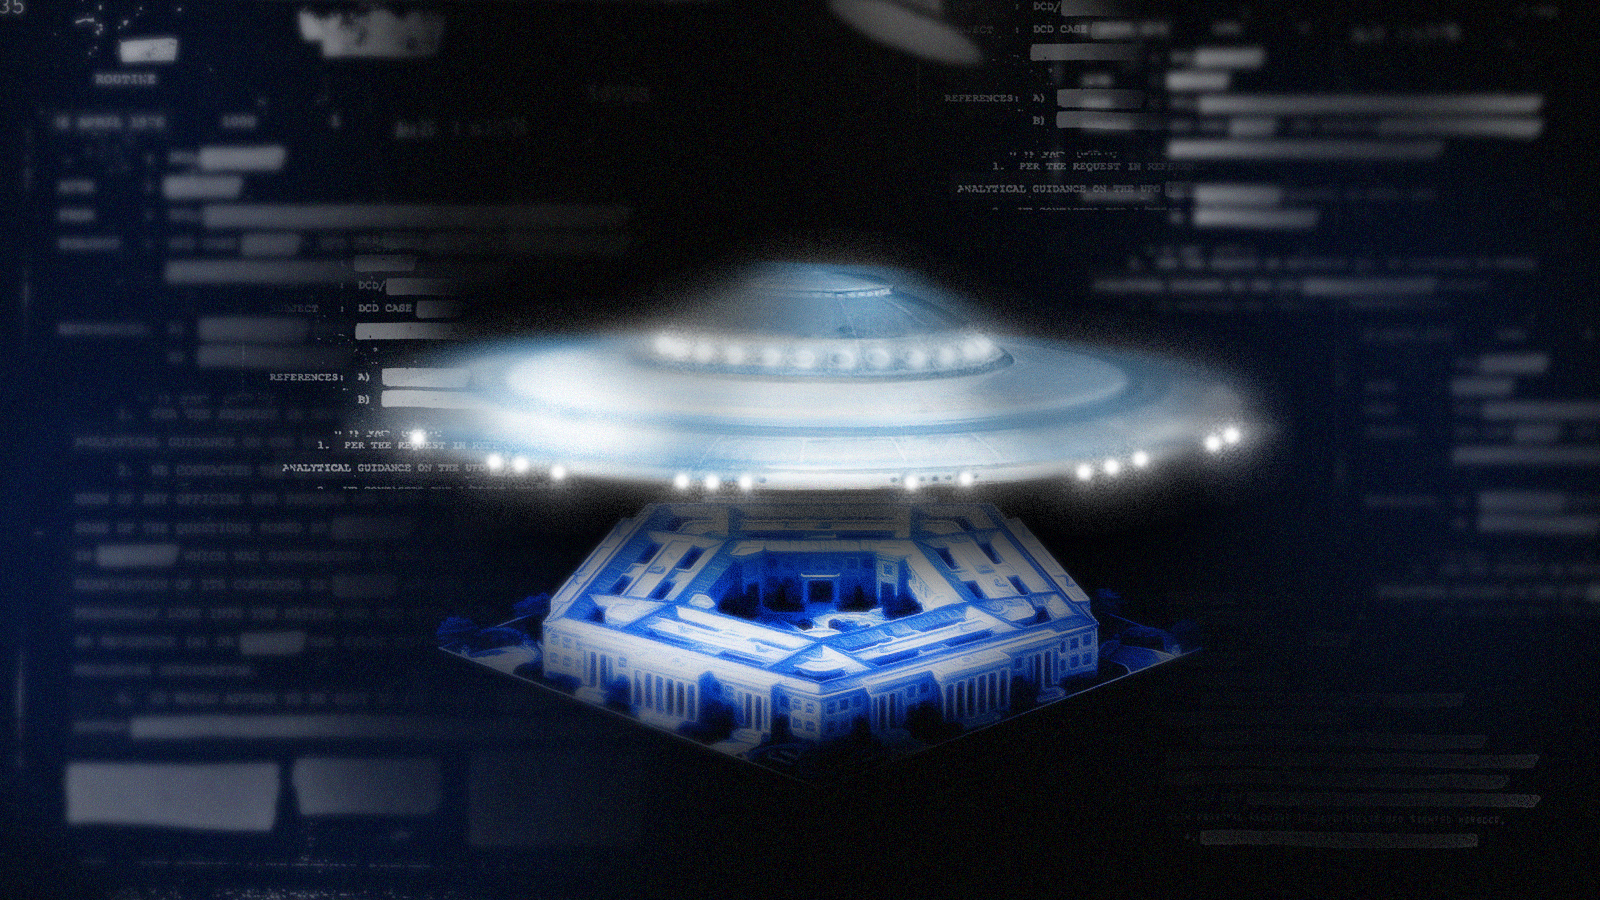 That Pentagon UFO report is coming soon.  All you need to know